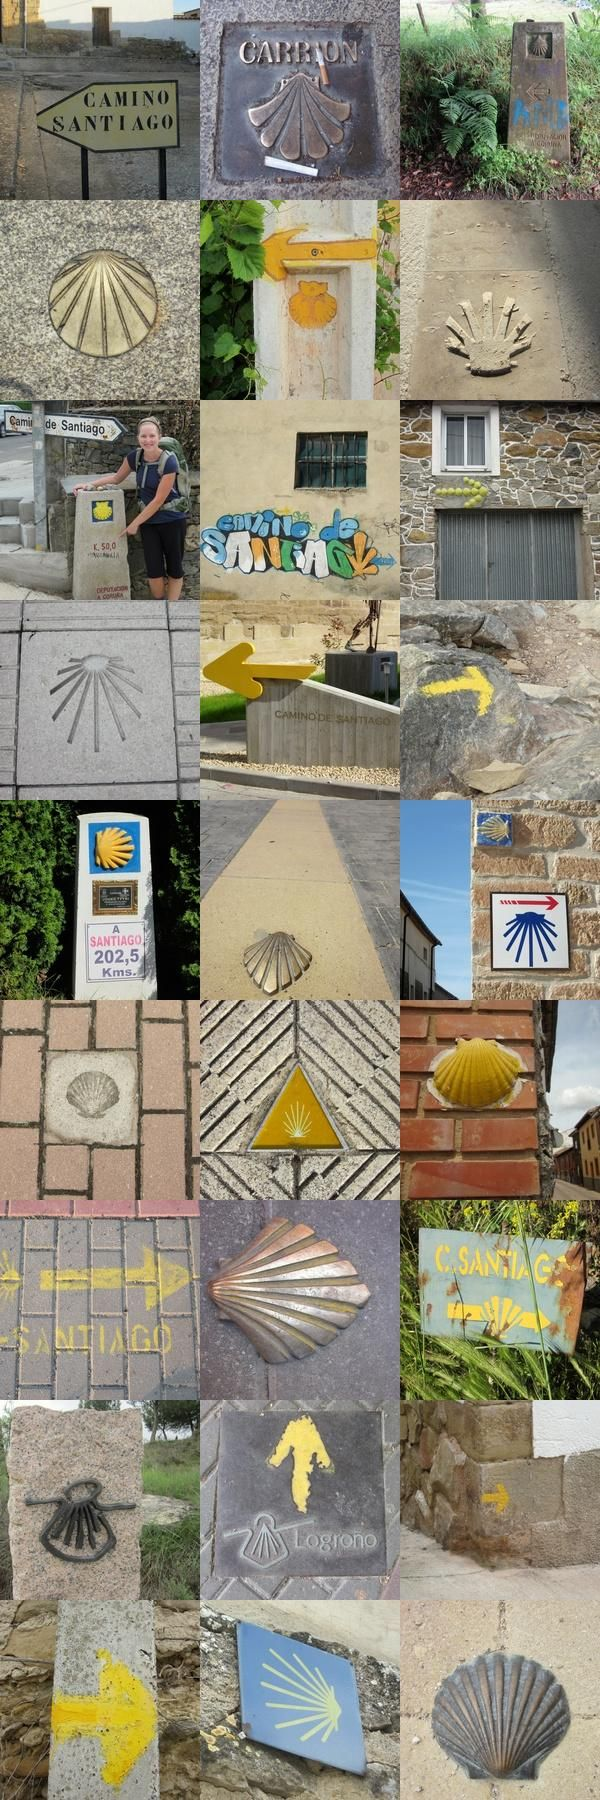 Some of the Many Many Way Markers